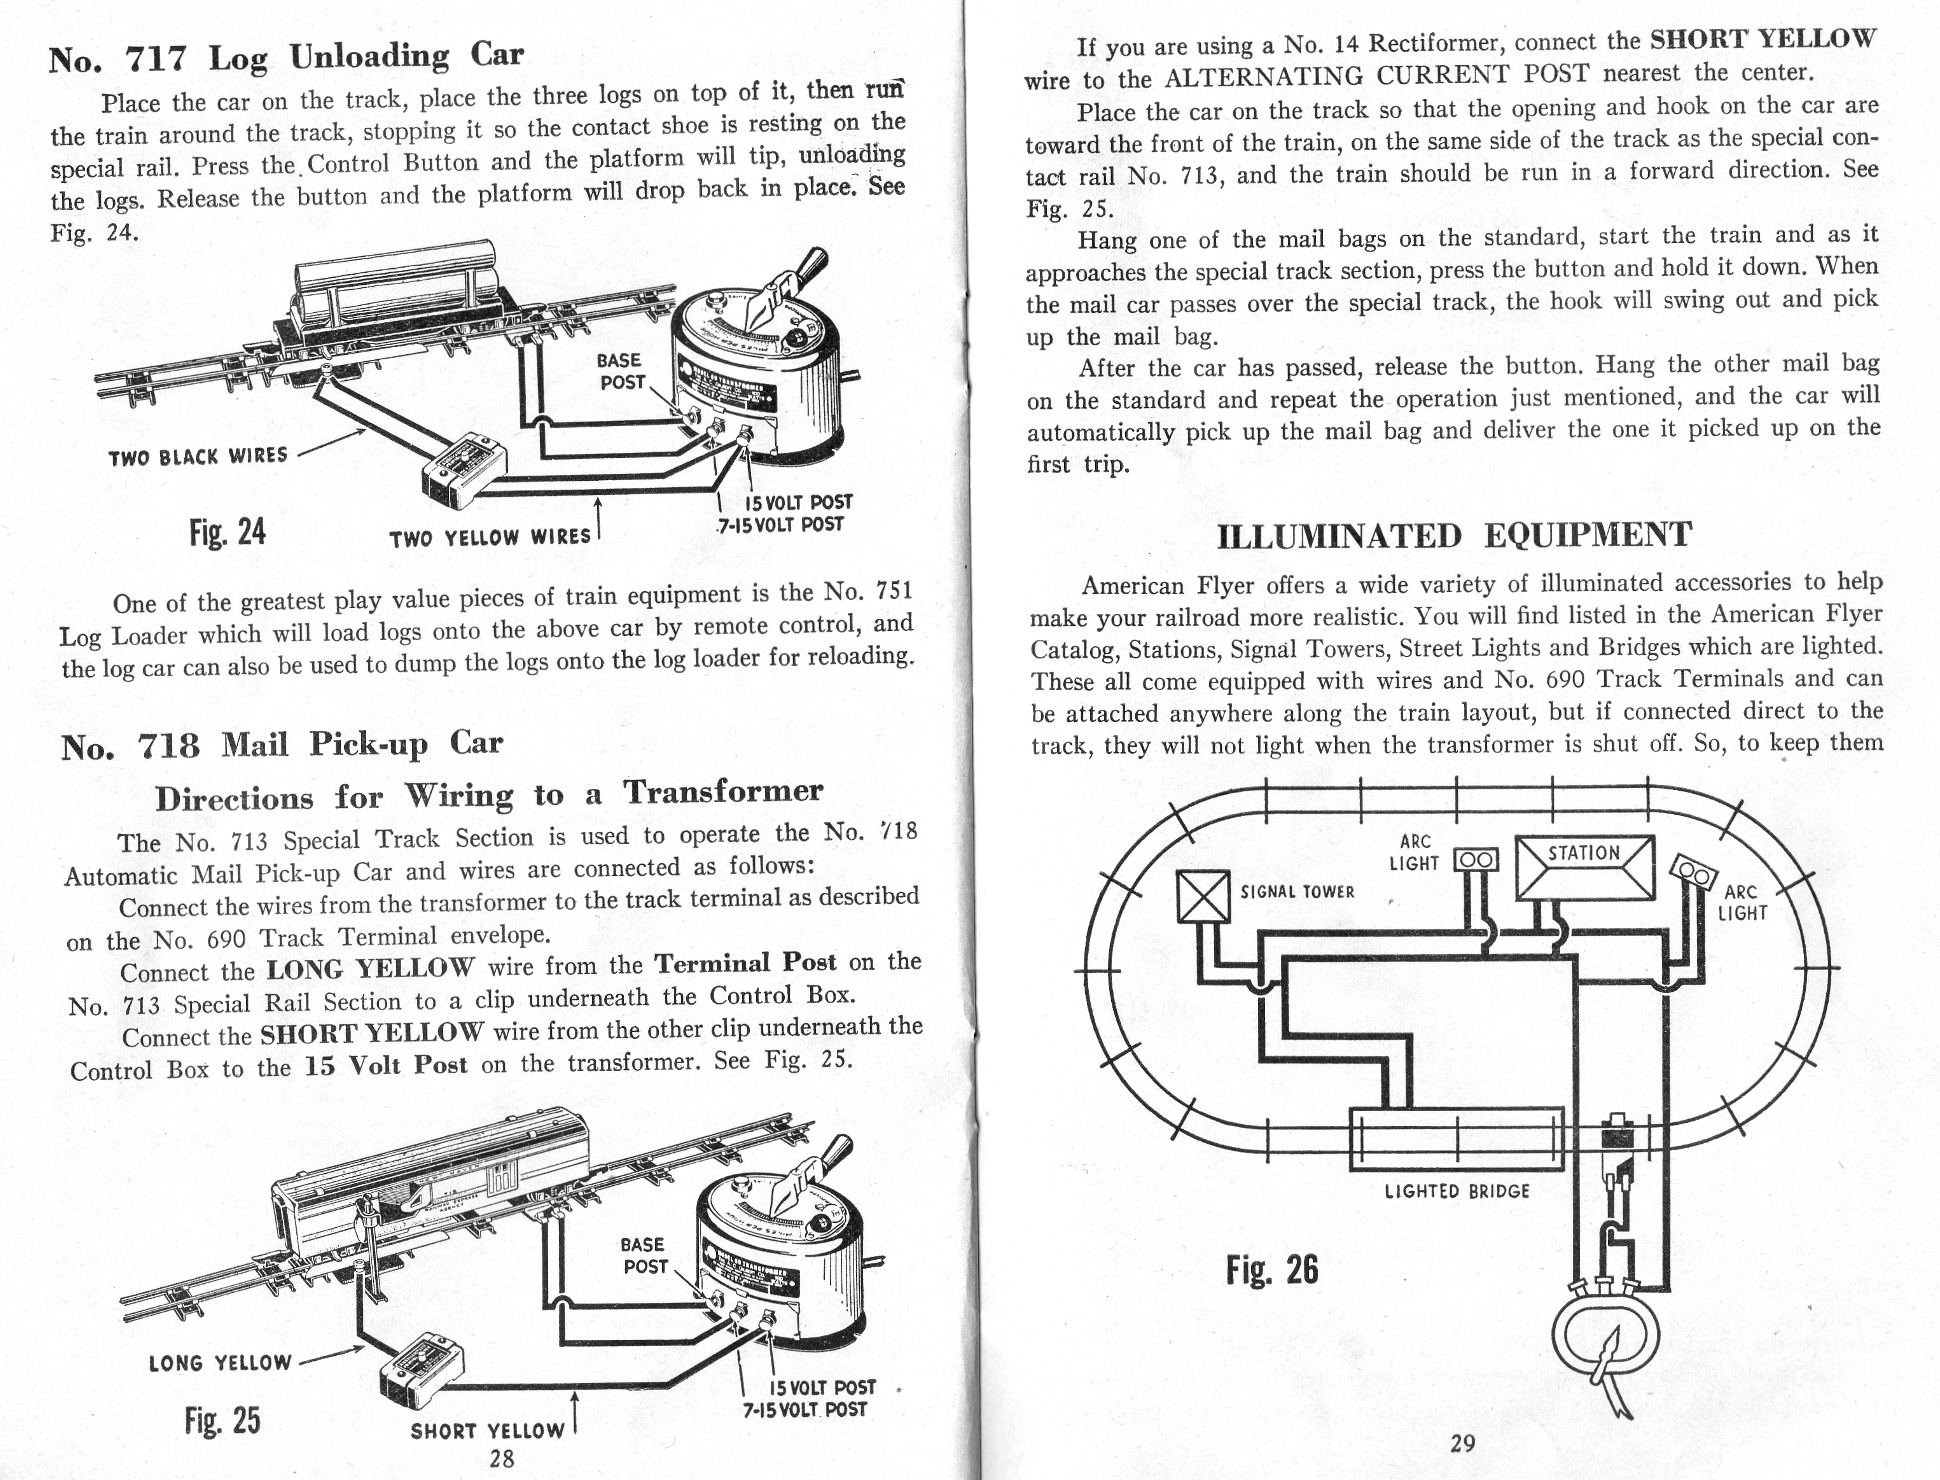 Automatic Action Cars and Illuminated Equipment